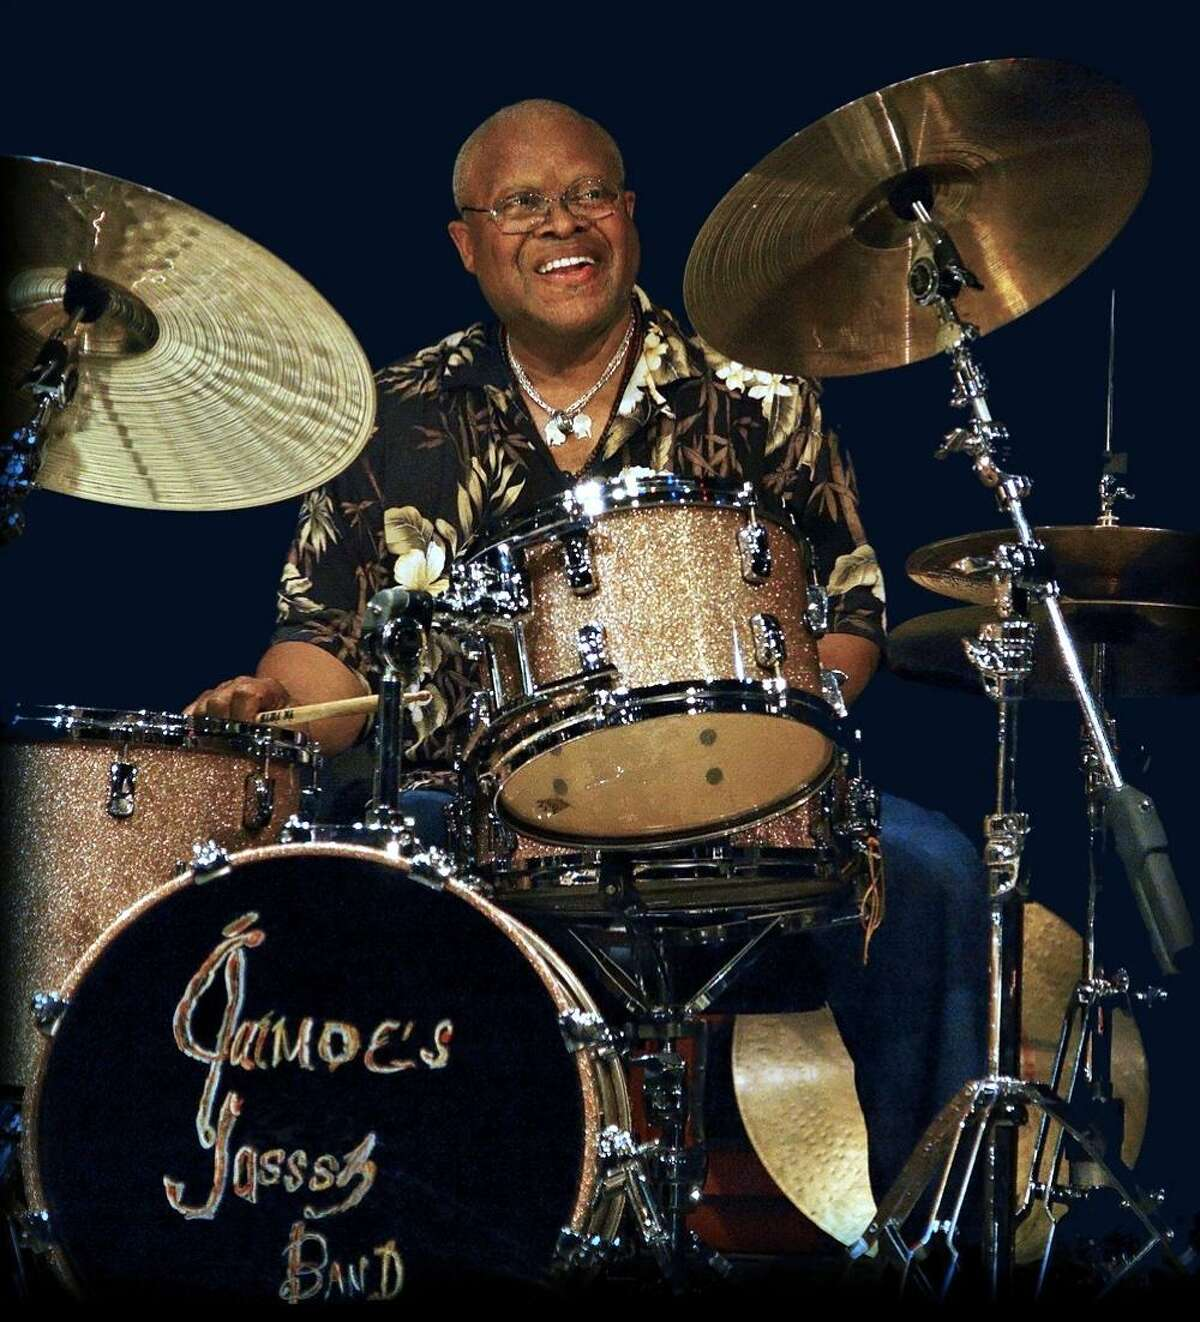 Legendary drummer, Rock and Roll Hall of Famer, and founding member of the Allman Brothers Band, Jaimoe and his Jasssz Band will perform in concert at Bridge Street Live in Collinsville on Saturday. Find out more.